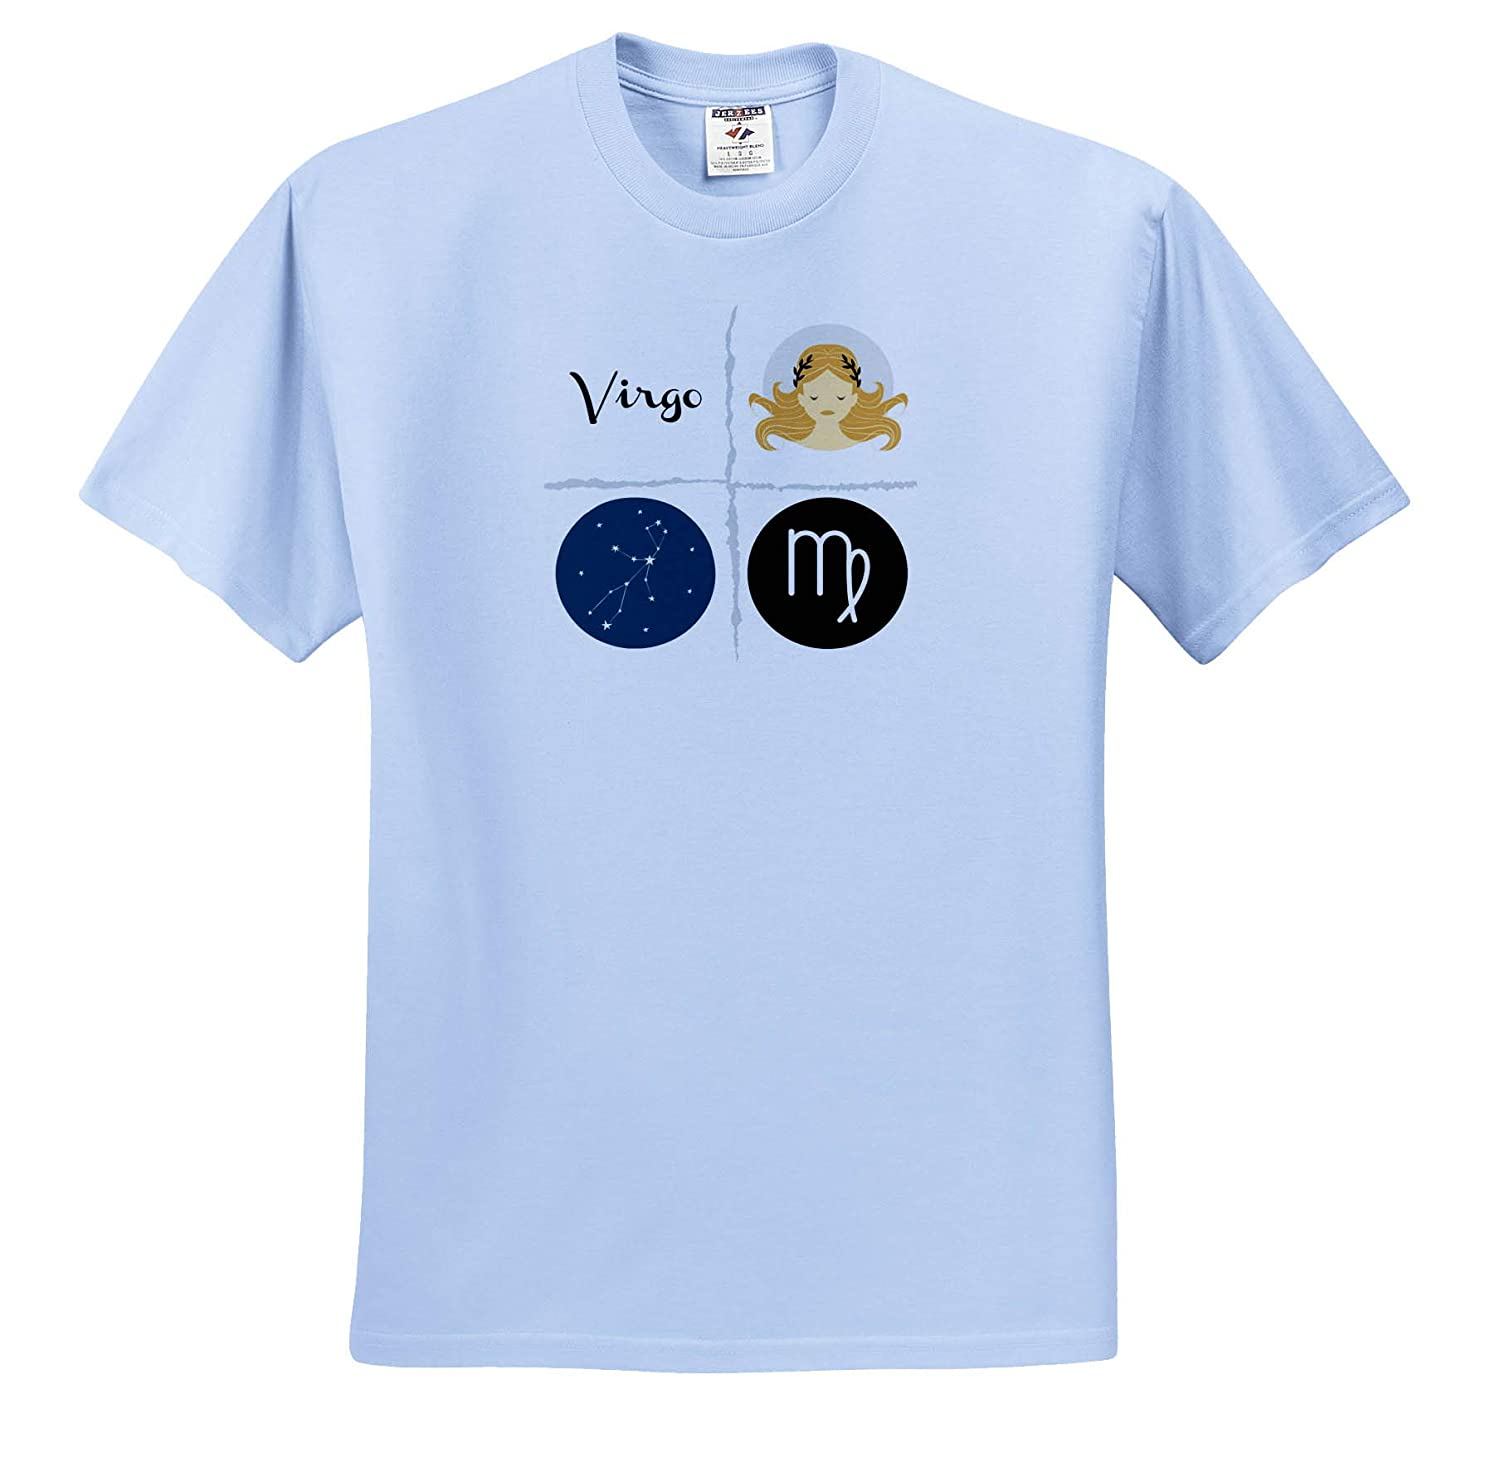 ts/_321046 3dRose Carrie Quote Image Adult T-Shirt XL Image of Virgo